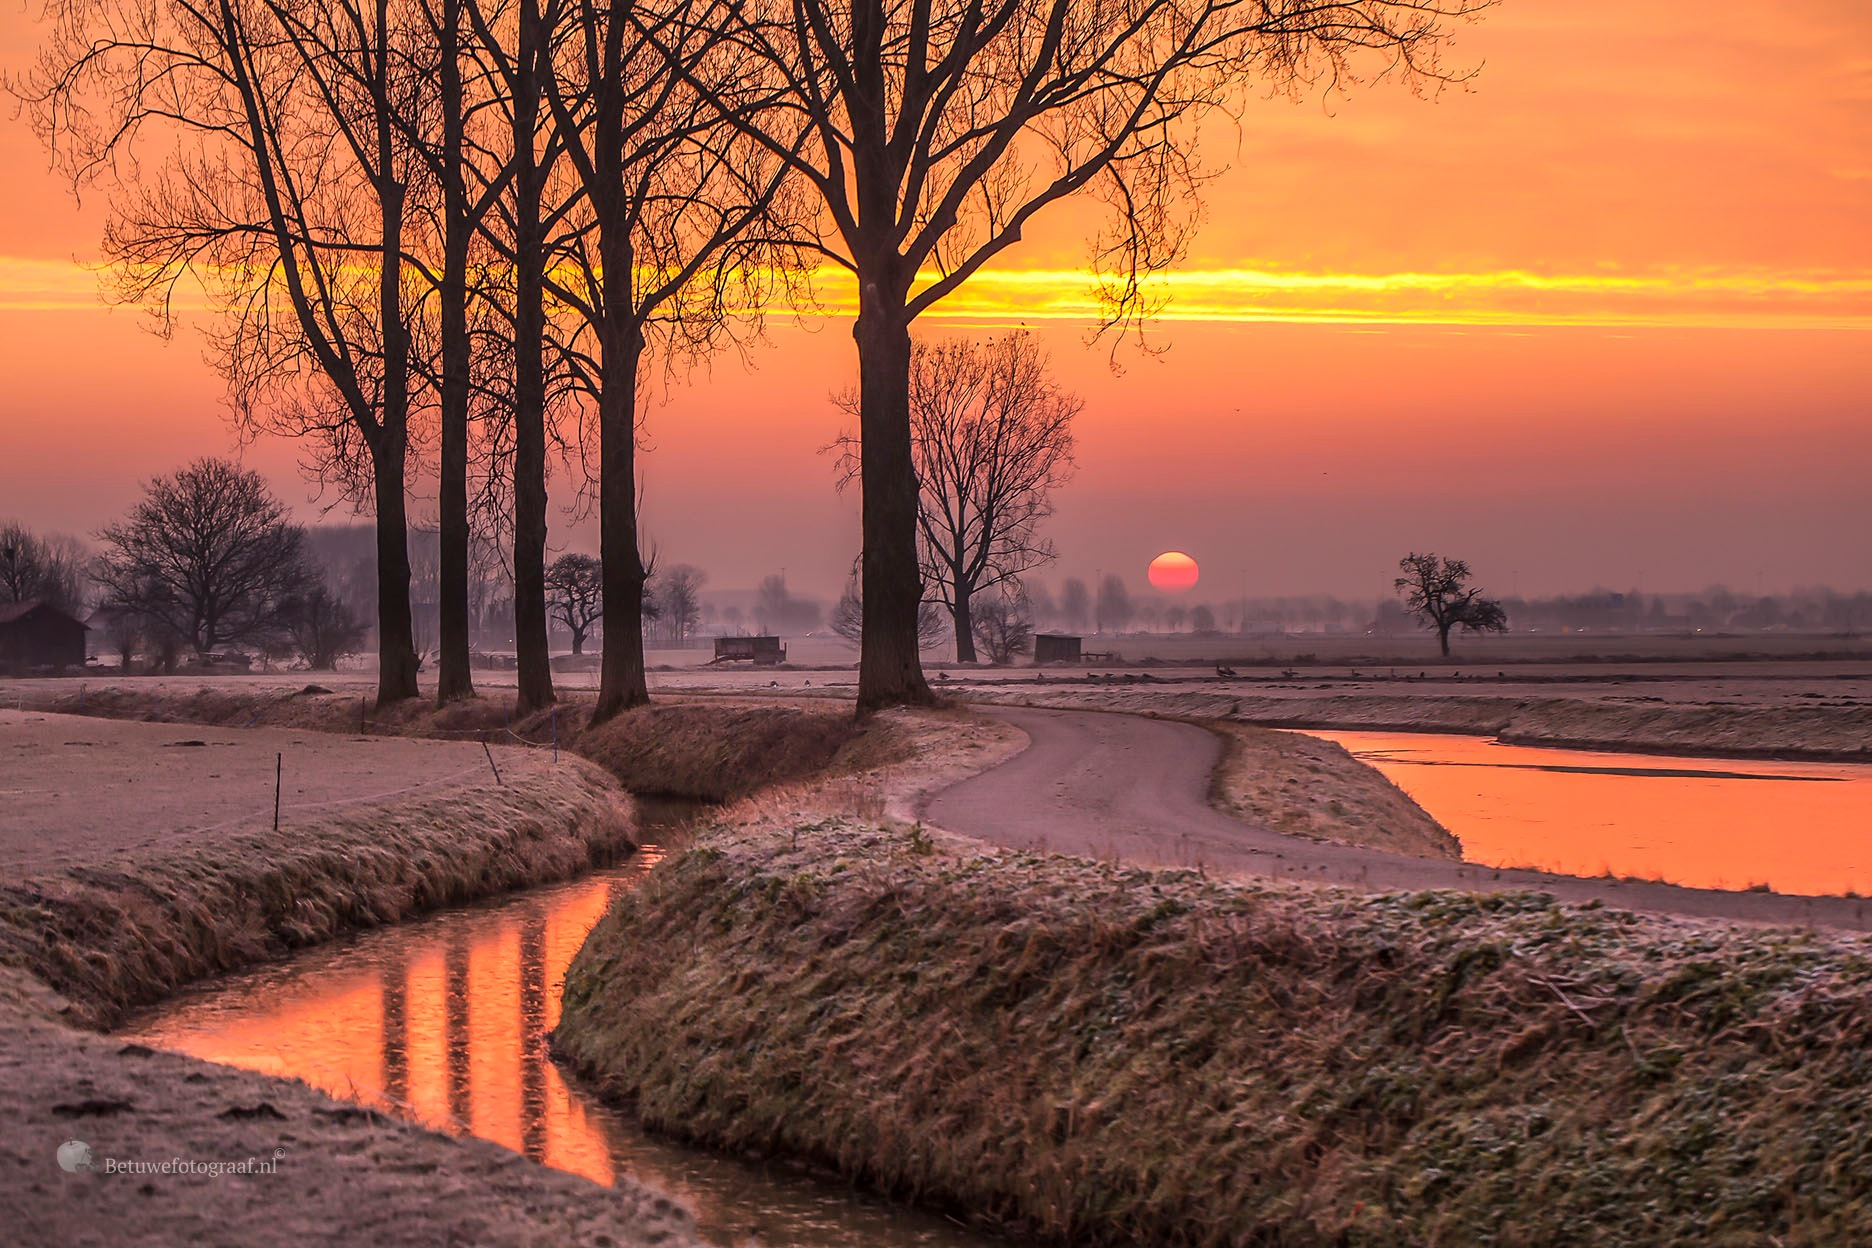 Cold and warm sunrise this morning by Betuwefotograaf